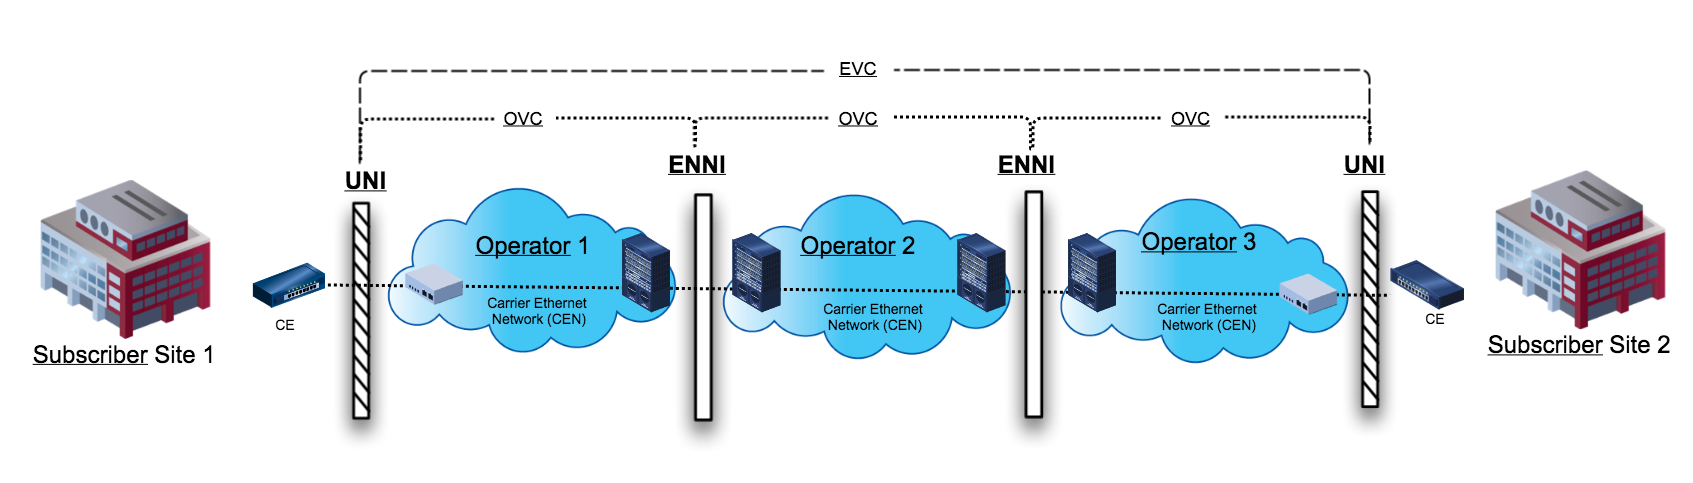 External Network to Network Interface (ENNI) - MEF Reference Wiki ...